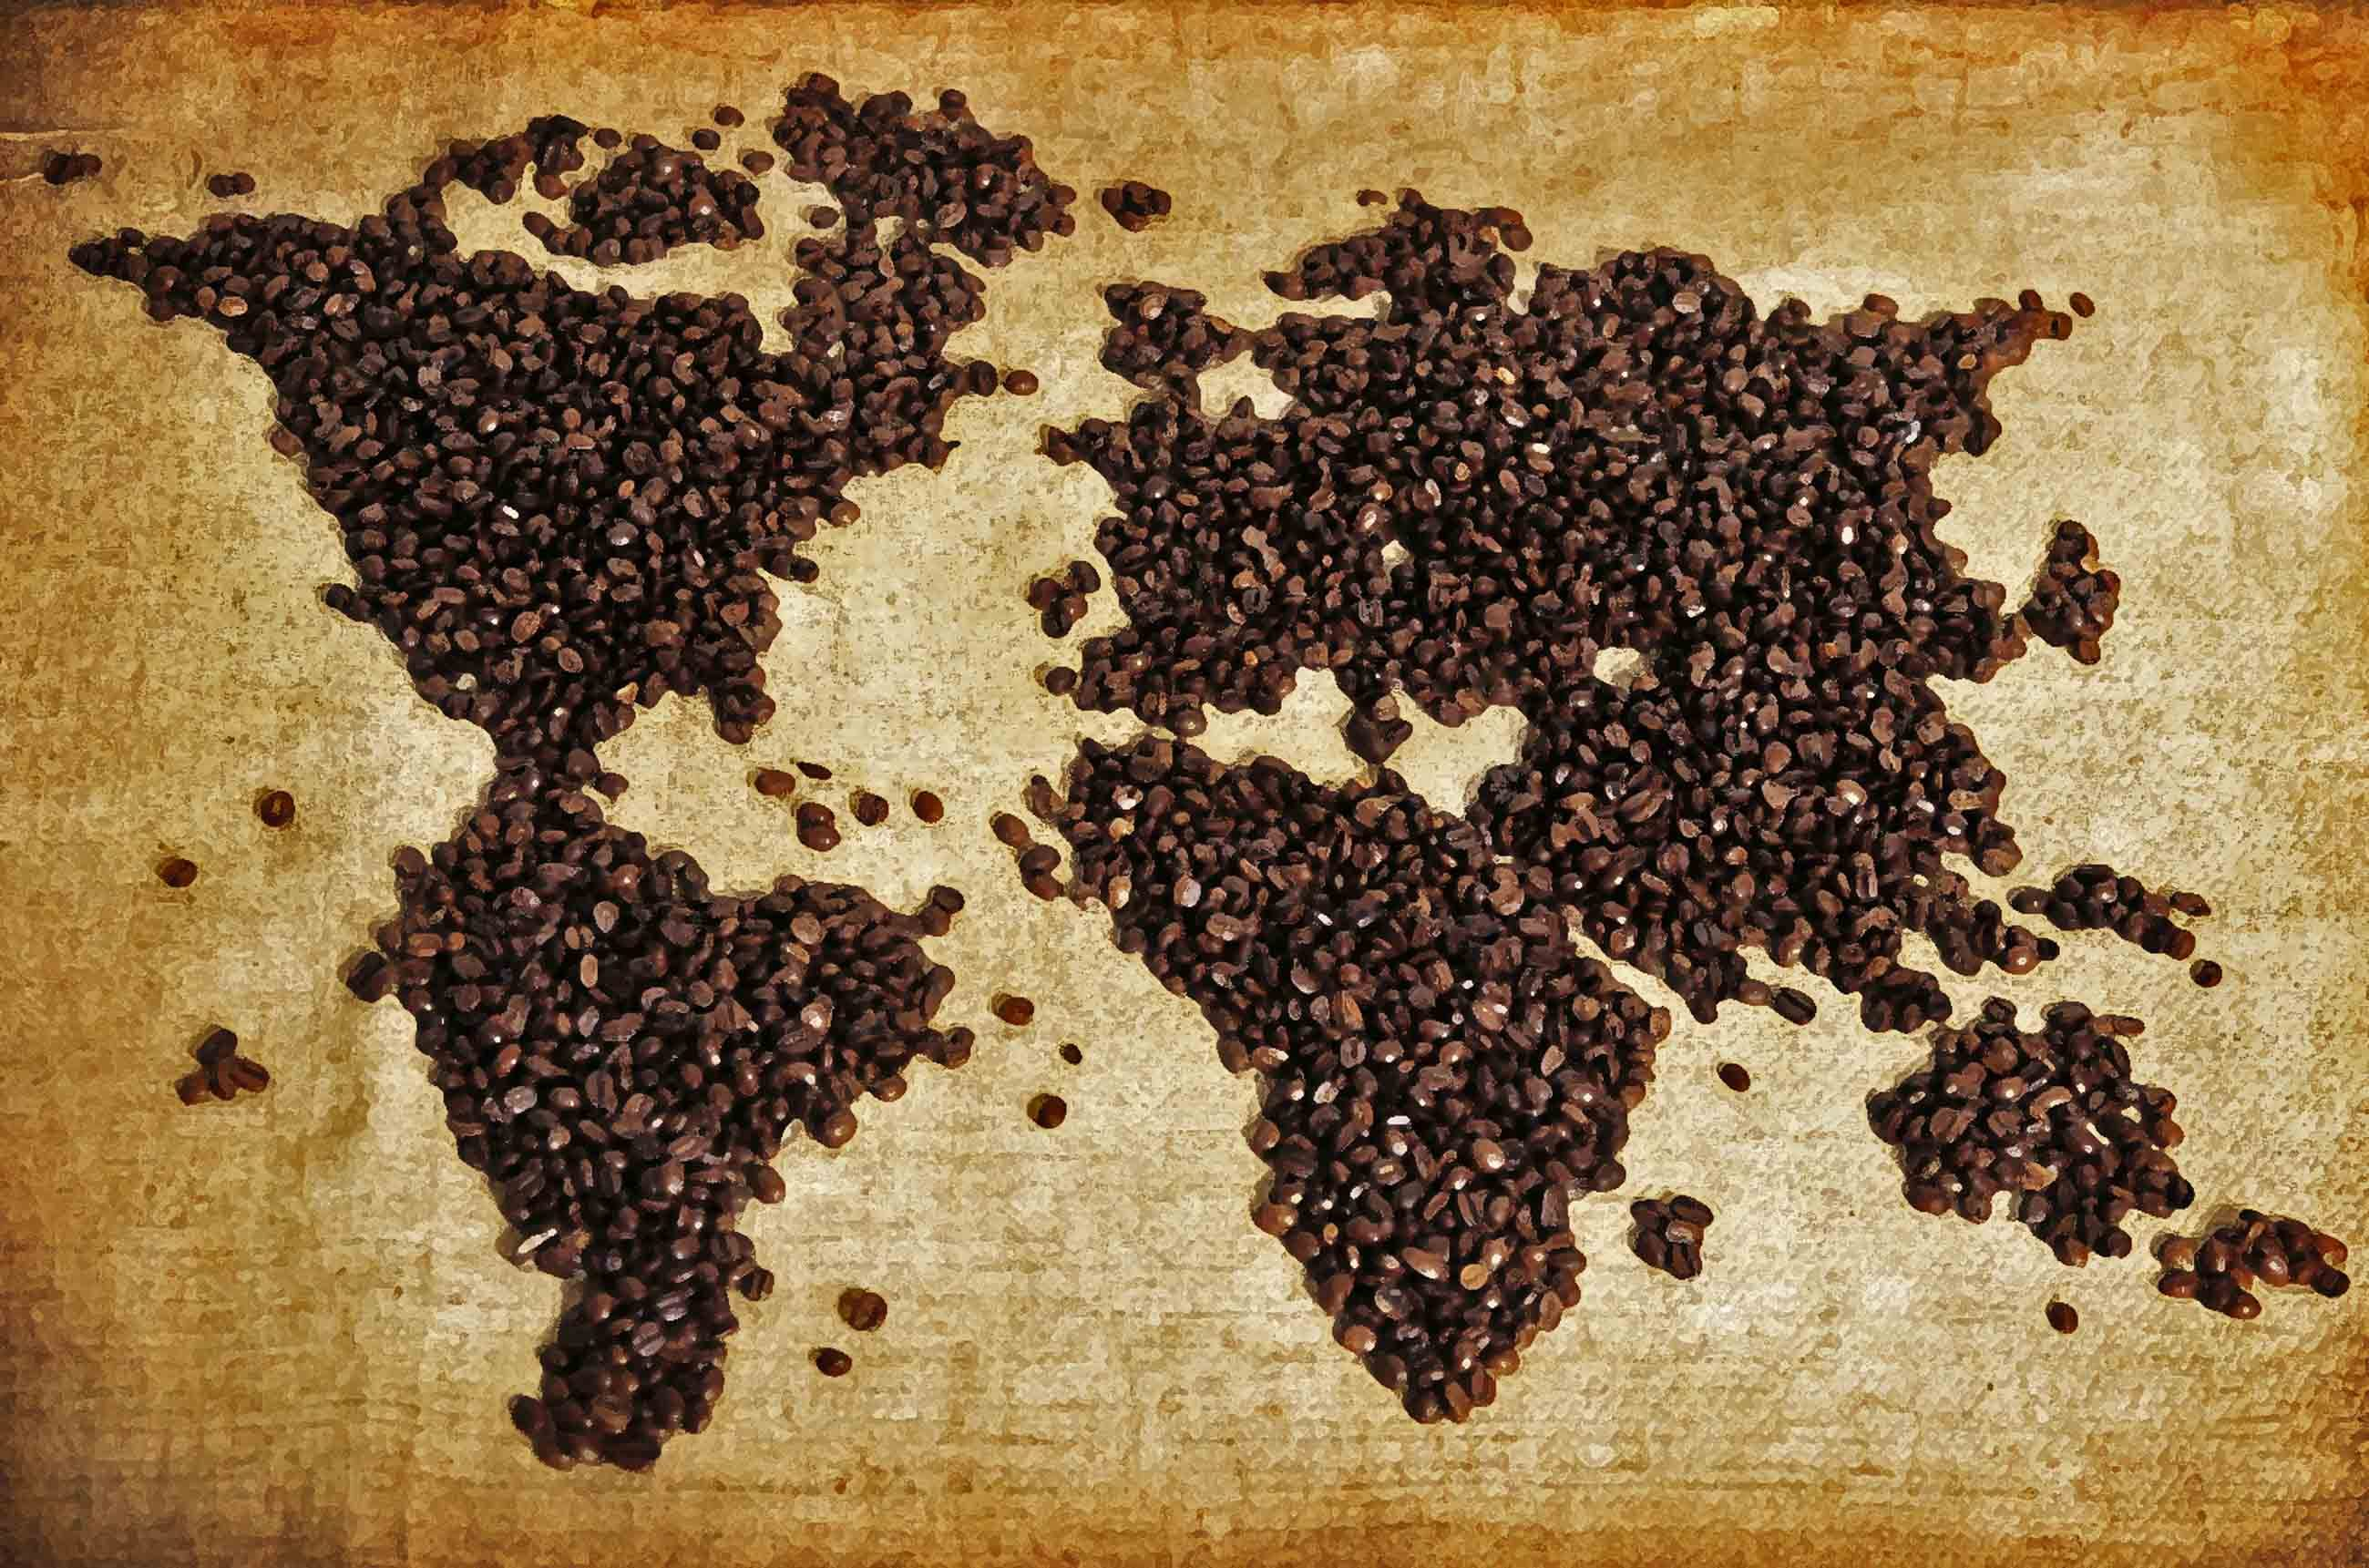 The history of coffee red whale coffee ethically for Mundial decor international nv